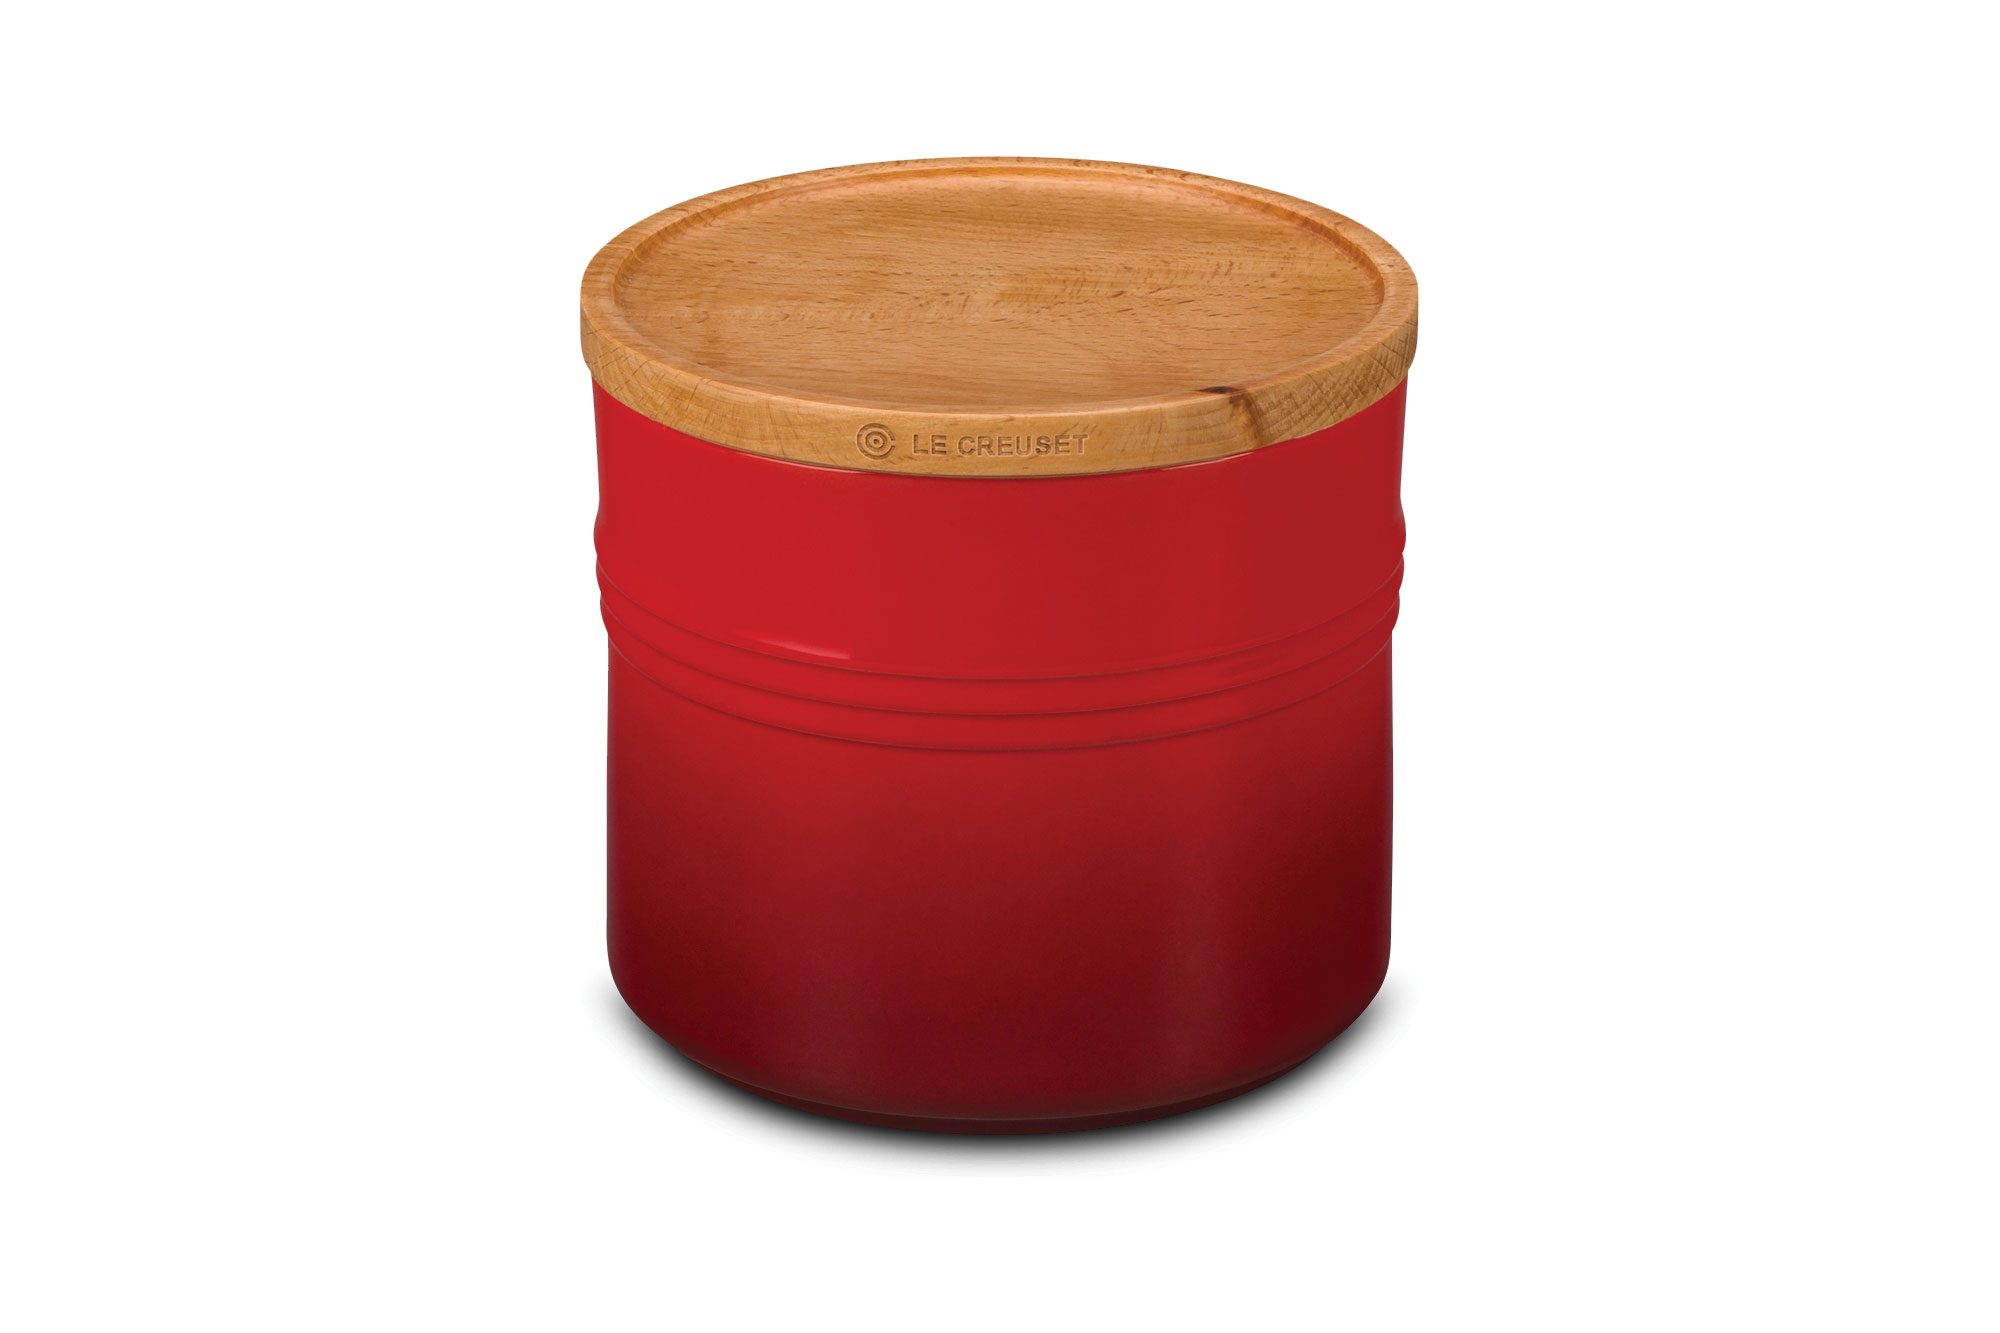 Le Creuset Stoneware 1 5 Quart Canister With Wood Lid